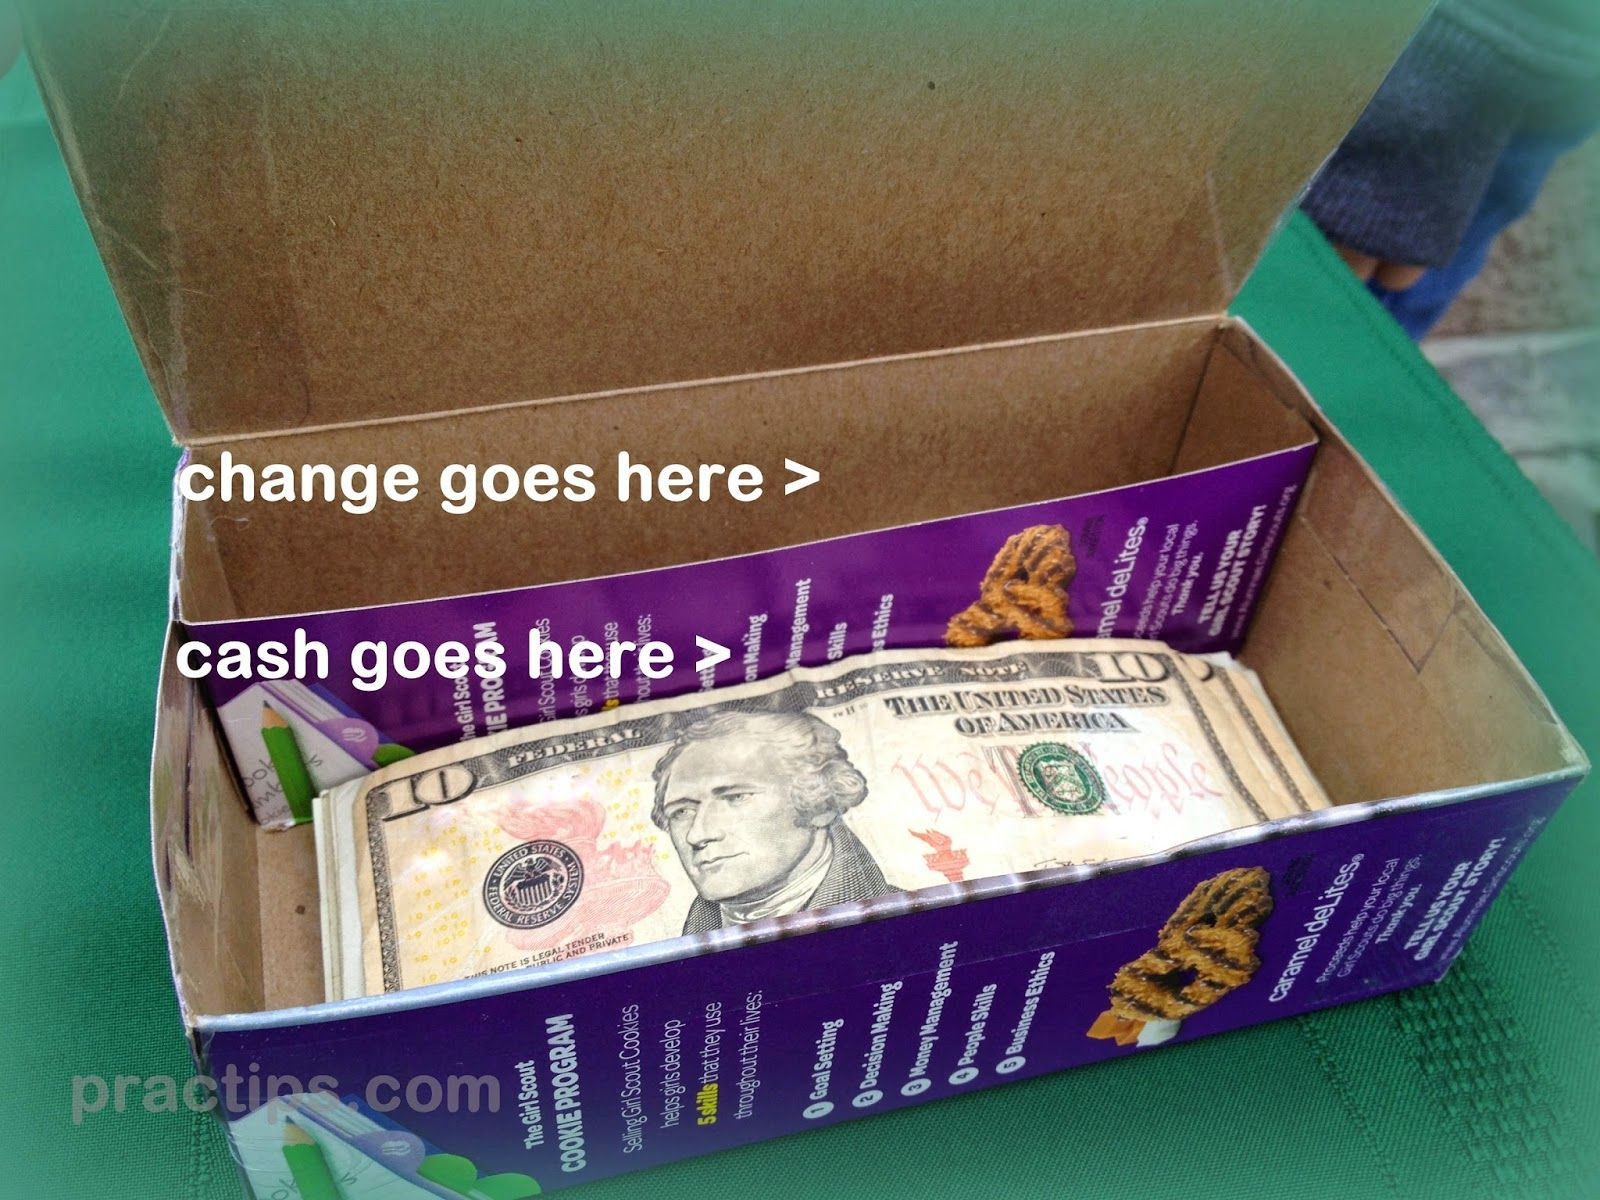 Girl scout scrapbook ideas - Practips Quick Tip Tuesday Girl Scout Cookie Money Box Don T Sell